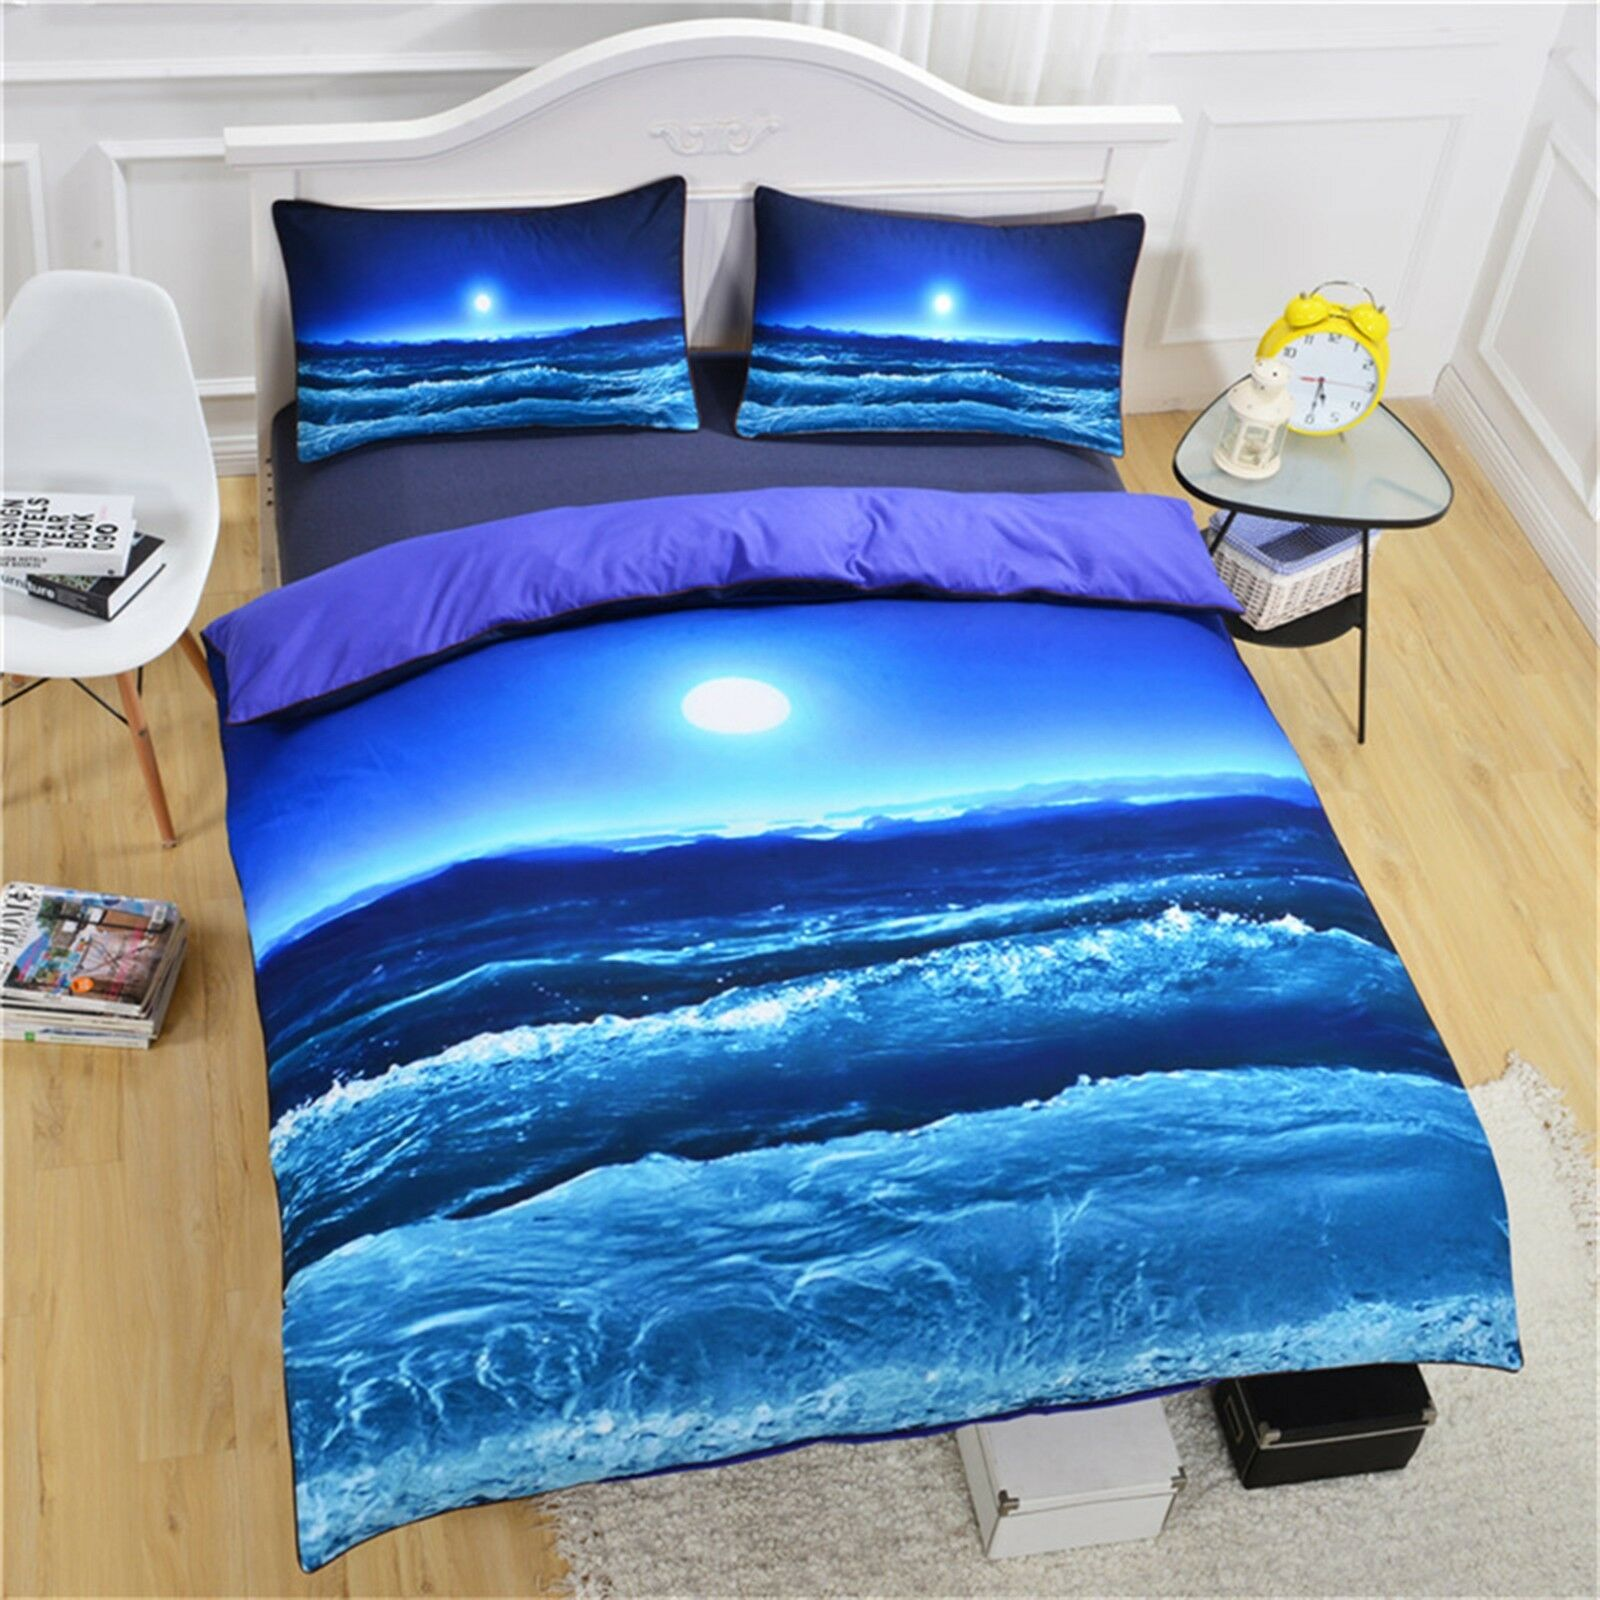 3D Sunny Sea 43 Bed Pillowcases Quilt Duvet Cover Set Single Queen King AU Carly